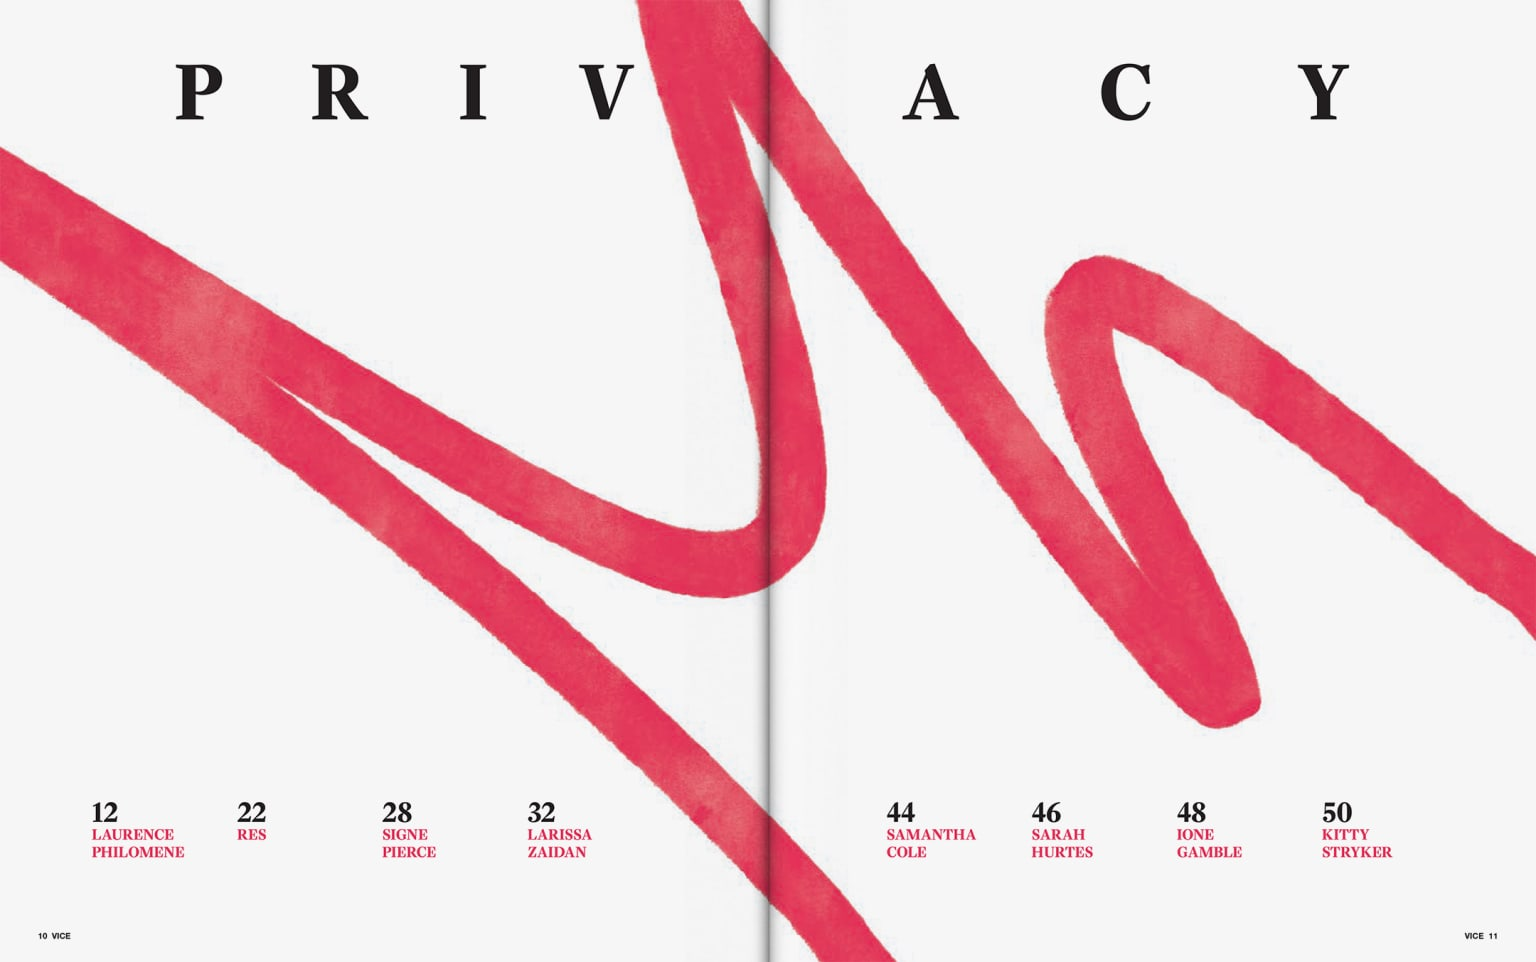 VICE Magazine: The Privacy and Perception Issue